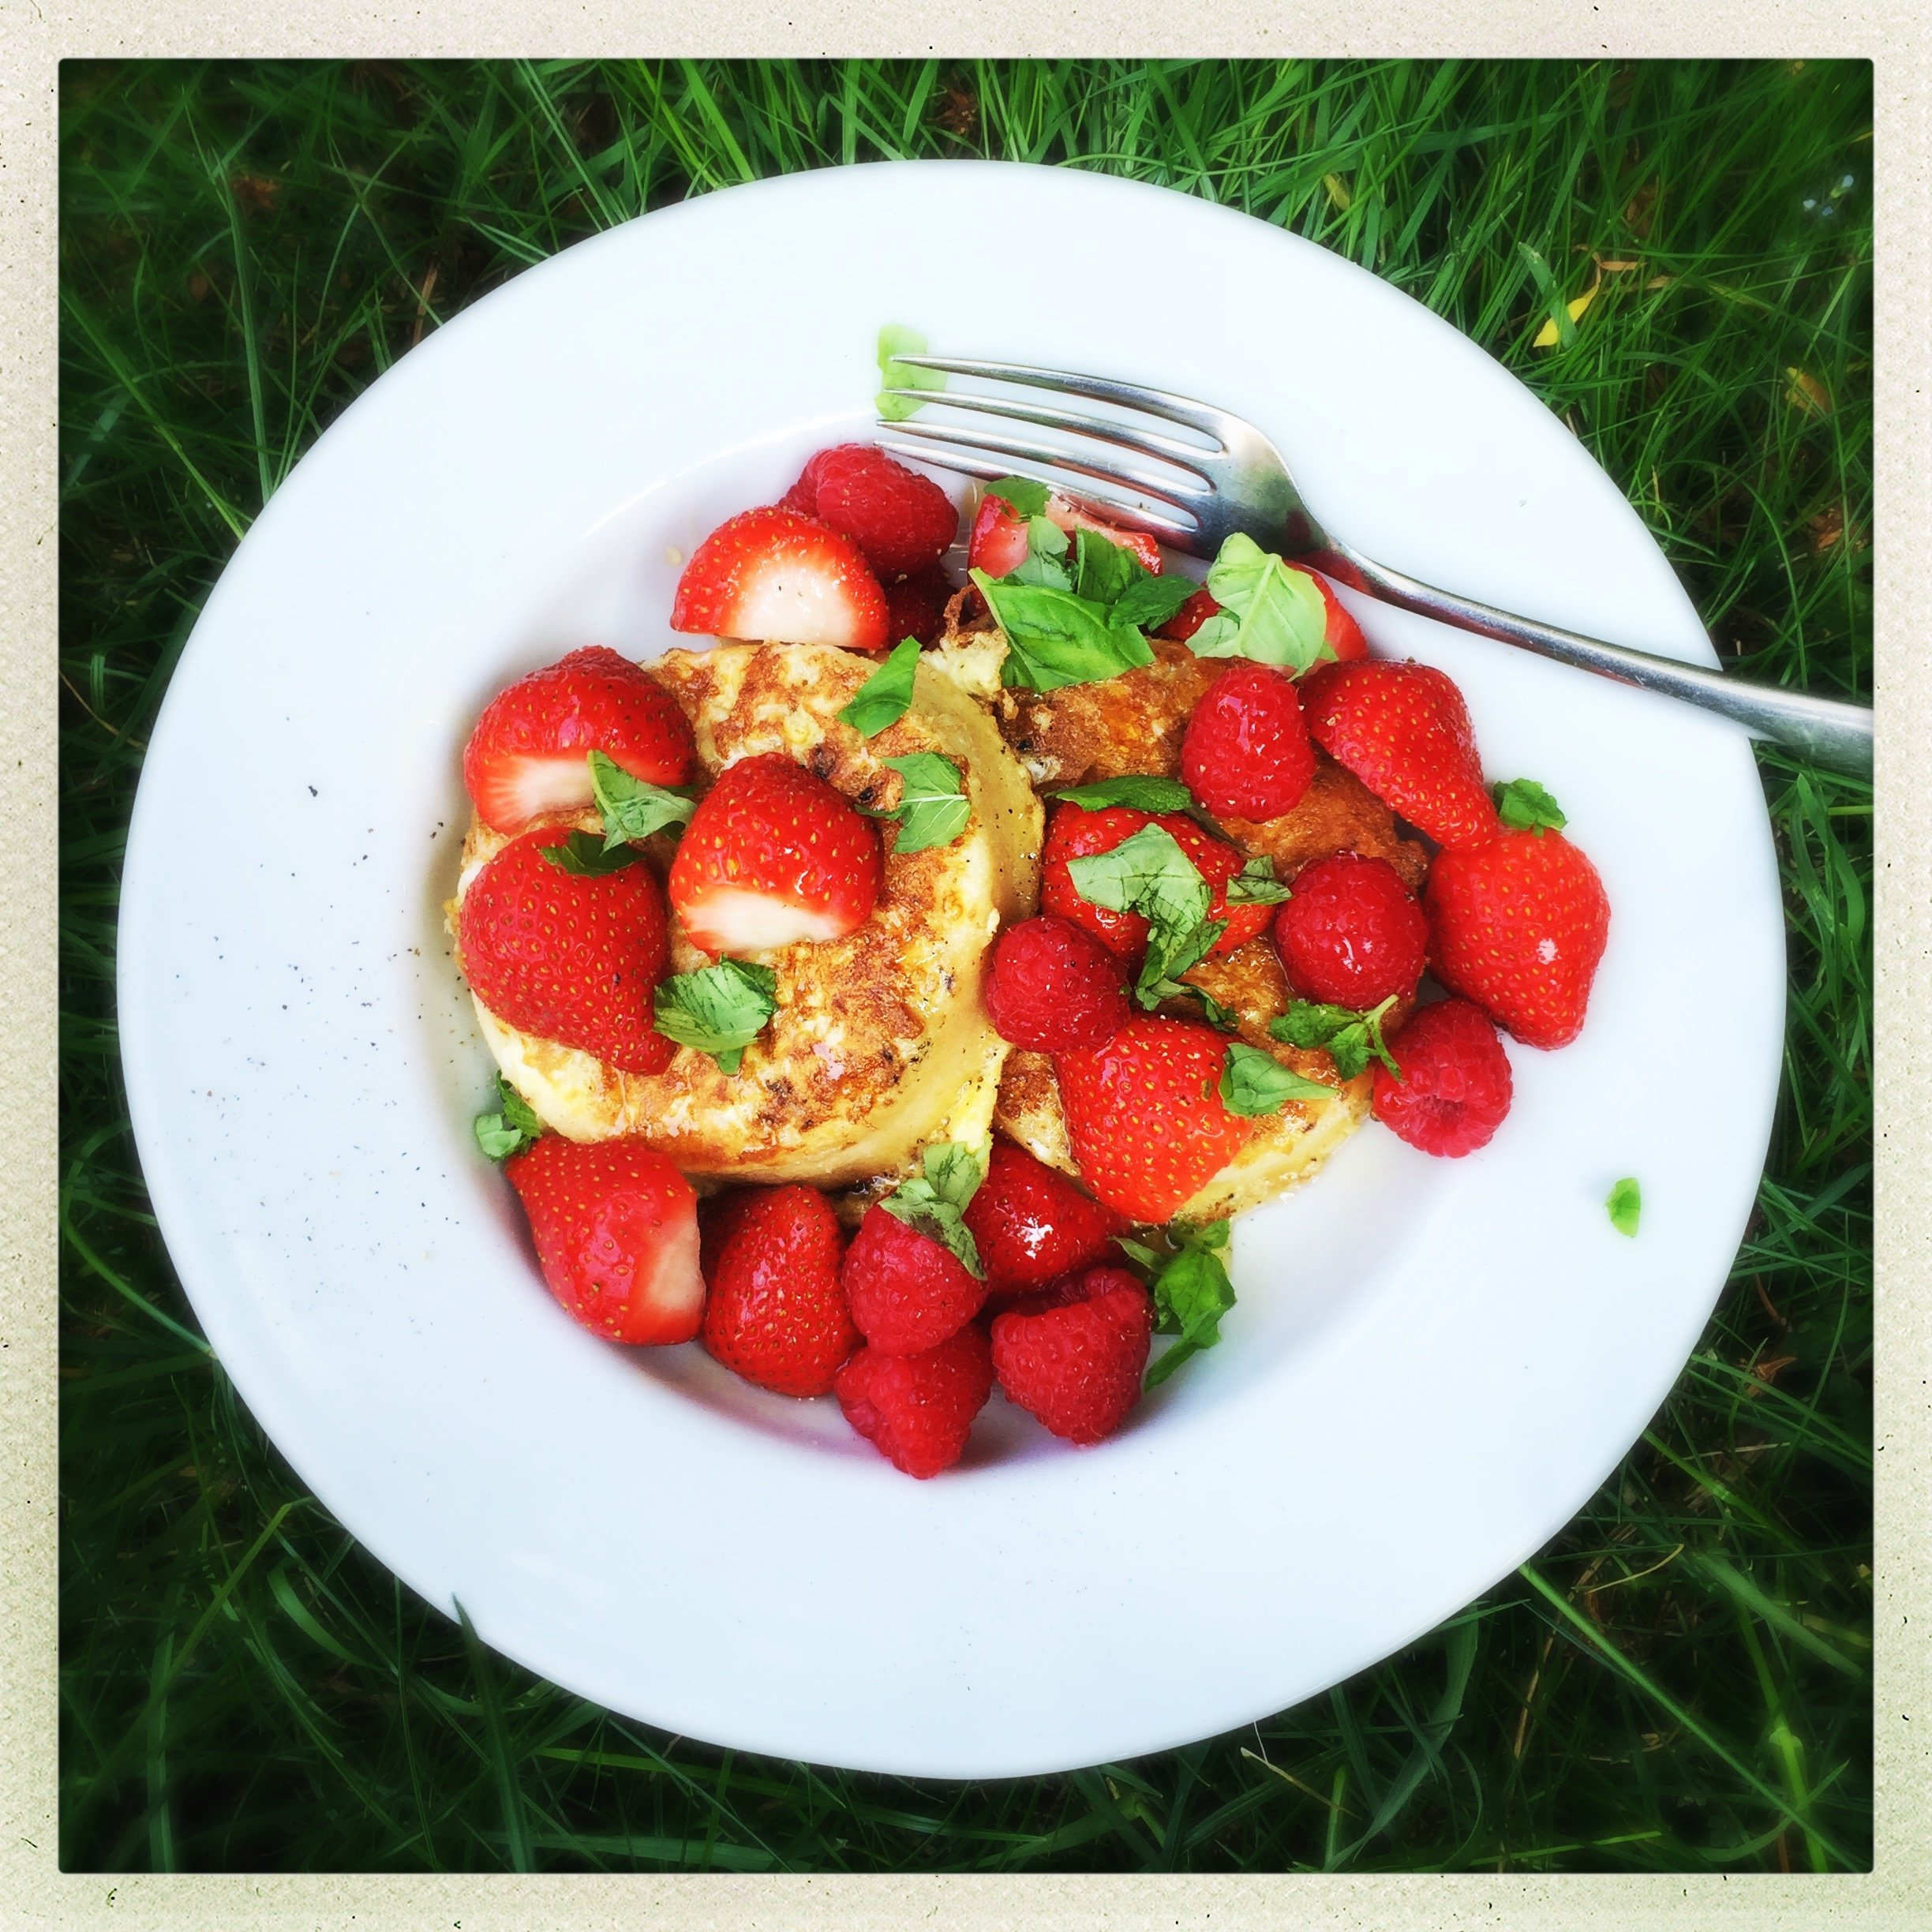 white plate on the grass - plate loaded with eggy bread crumpets topped with strawberries, raspberries and scattered with fresh mint